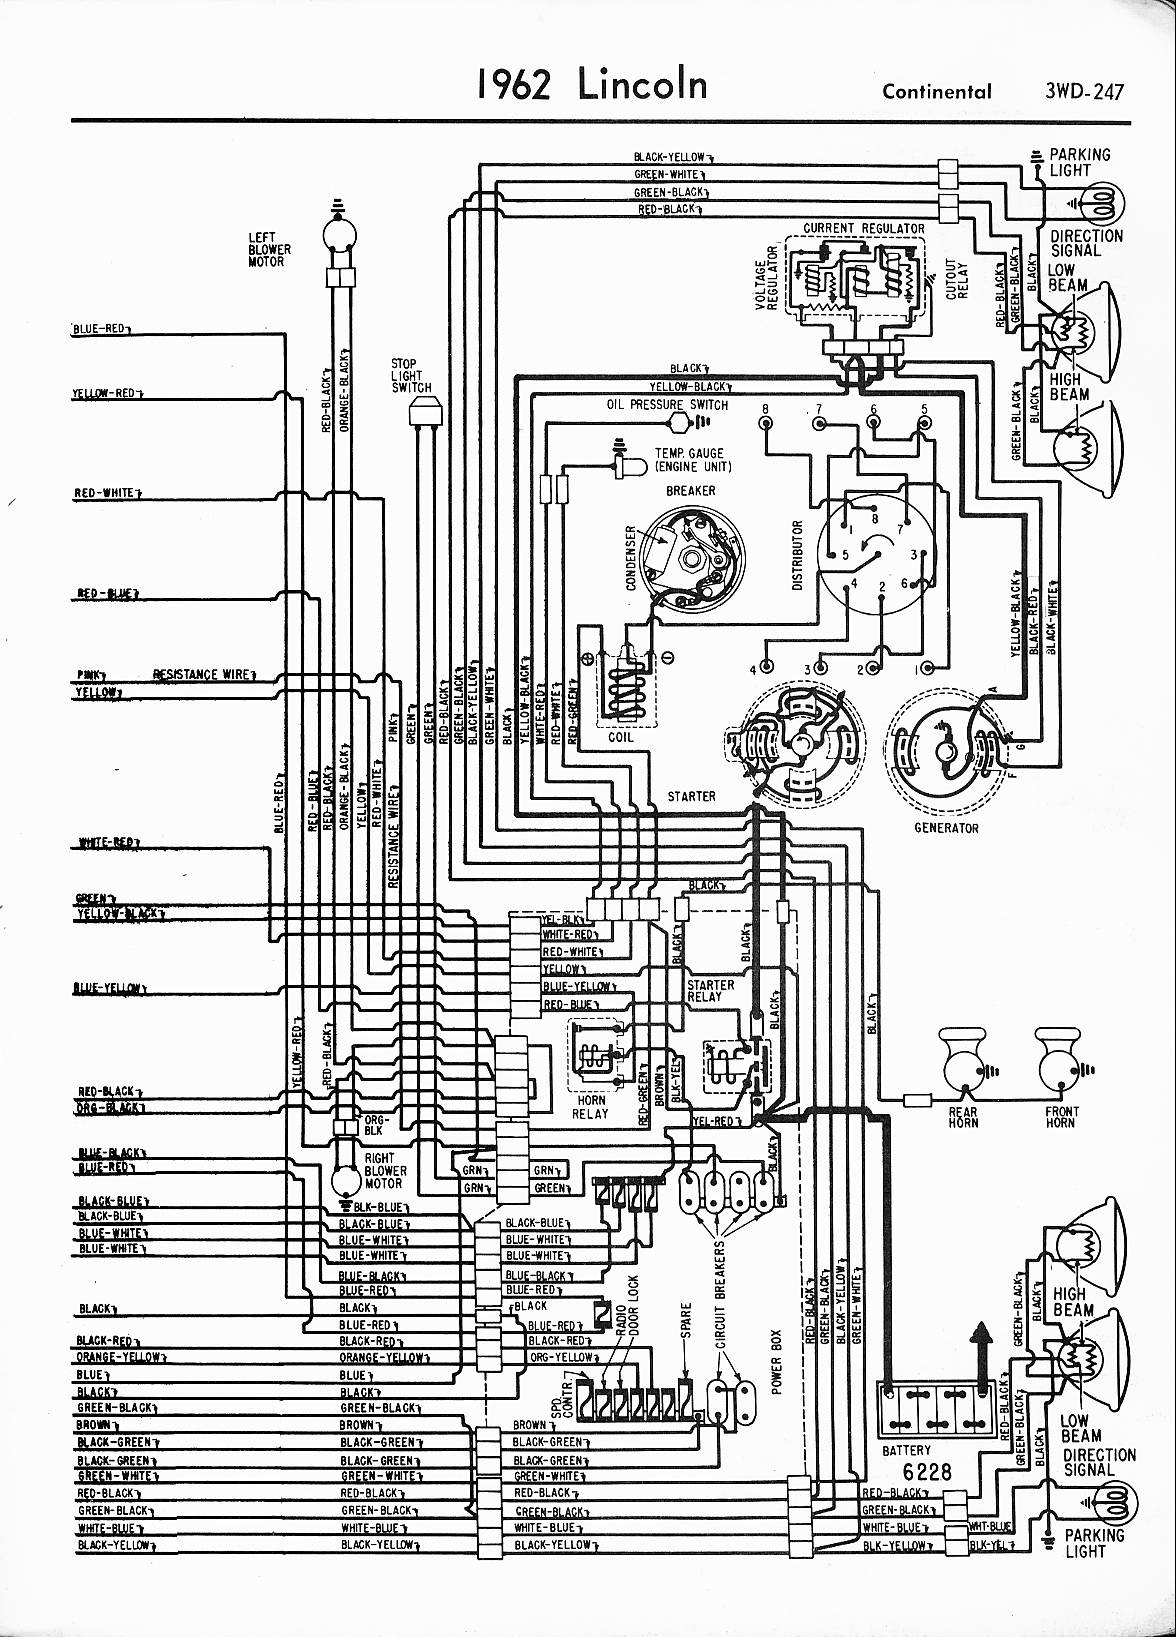 65 Lincoln Fuse Box Wiring Library F150 Traction Control Diagram 1962 Left Half